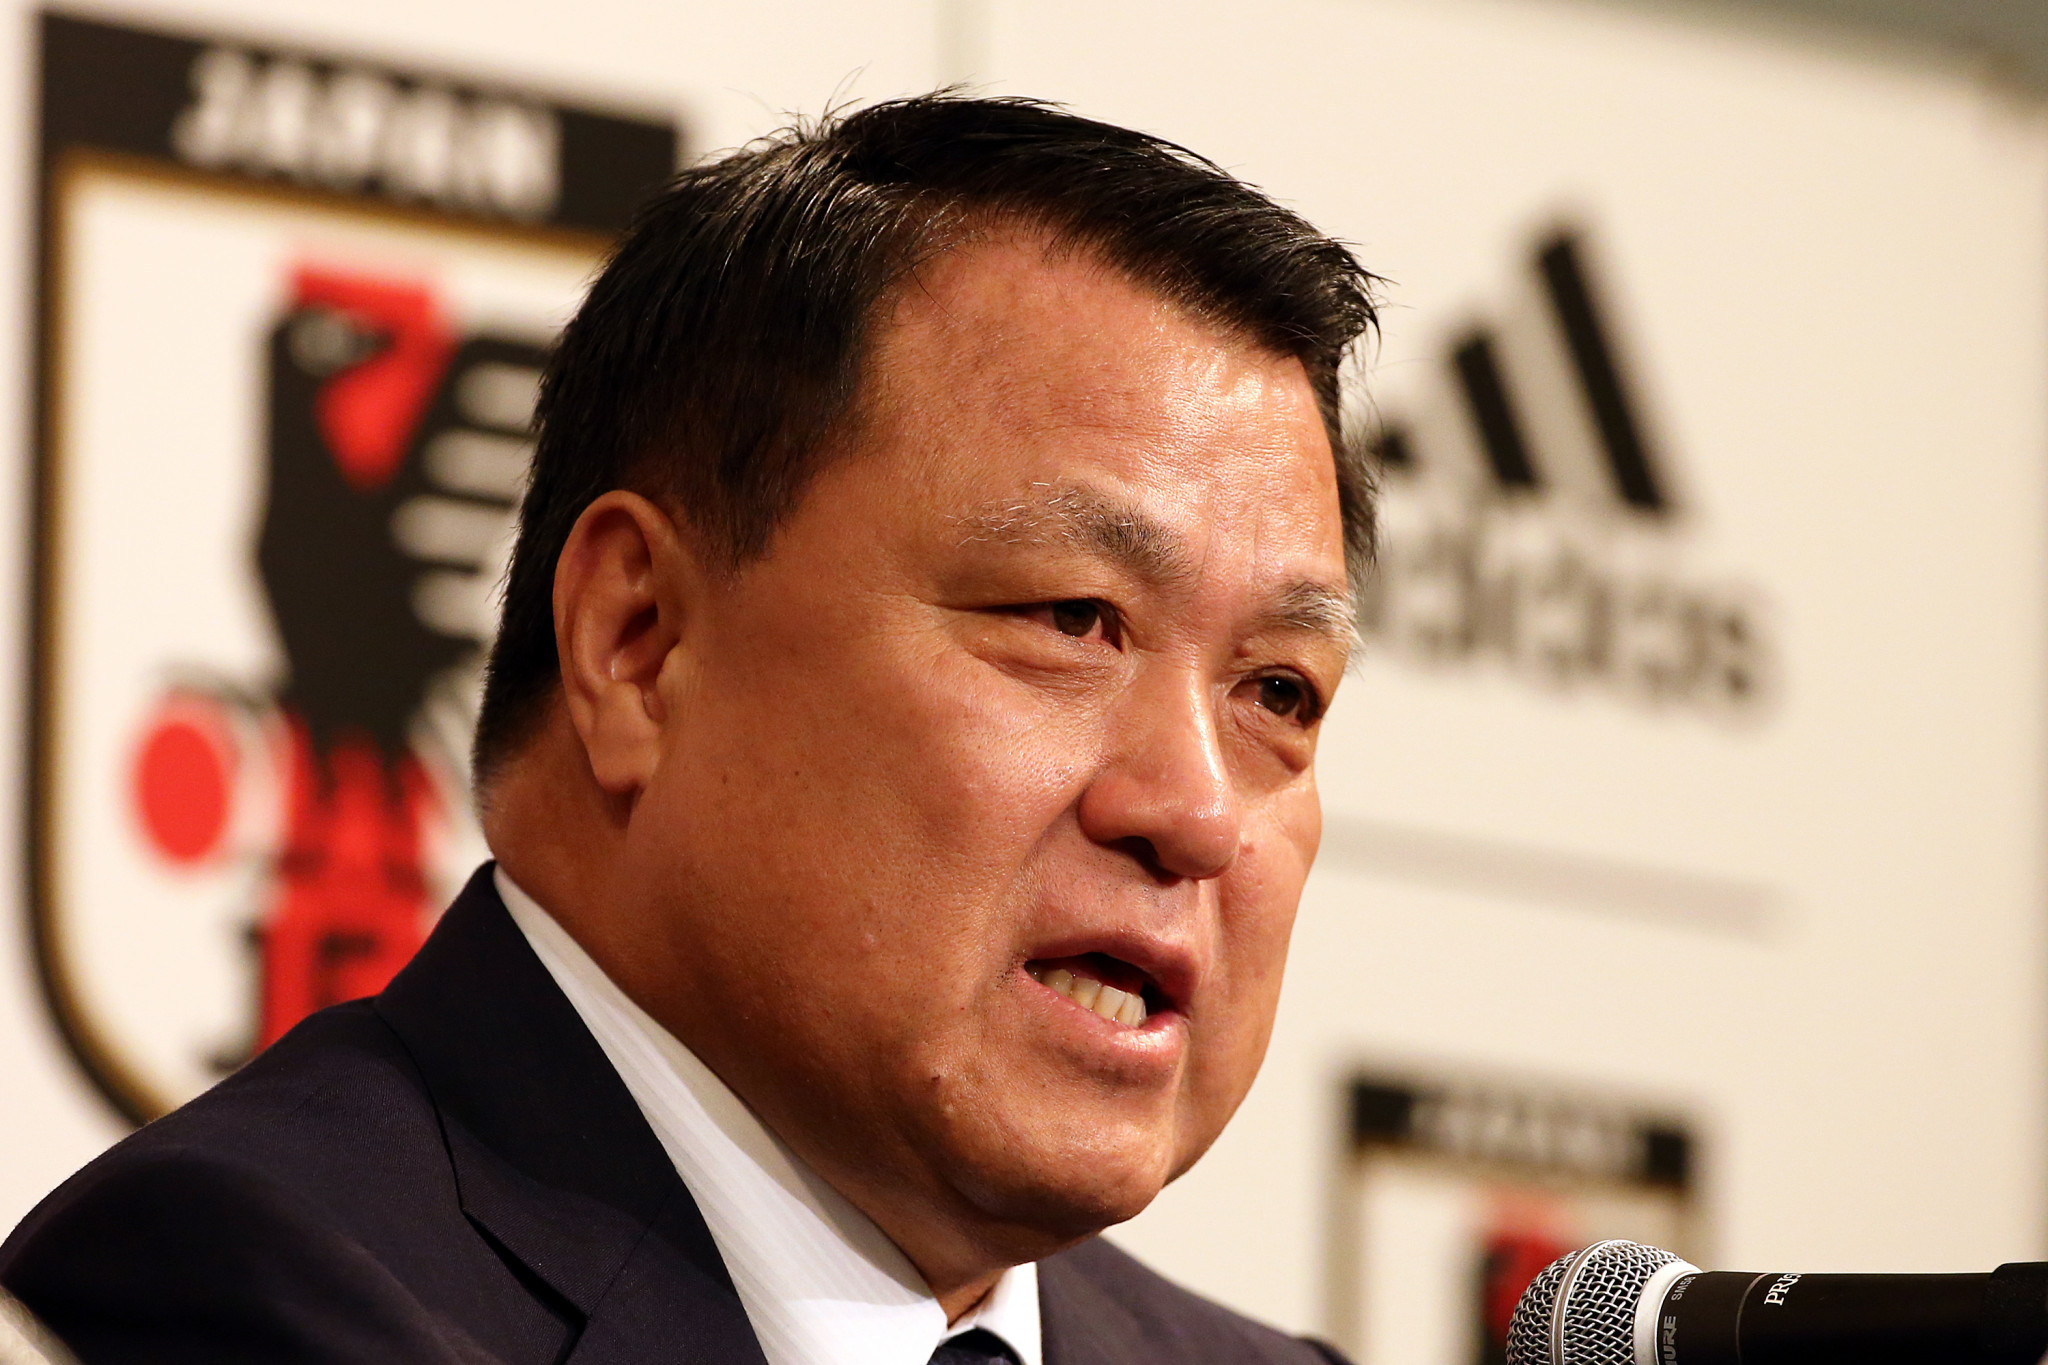 Japan Football Association President wants sports world to lead by example after recovering from COVID-19